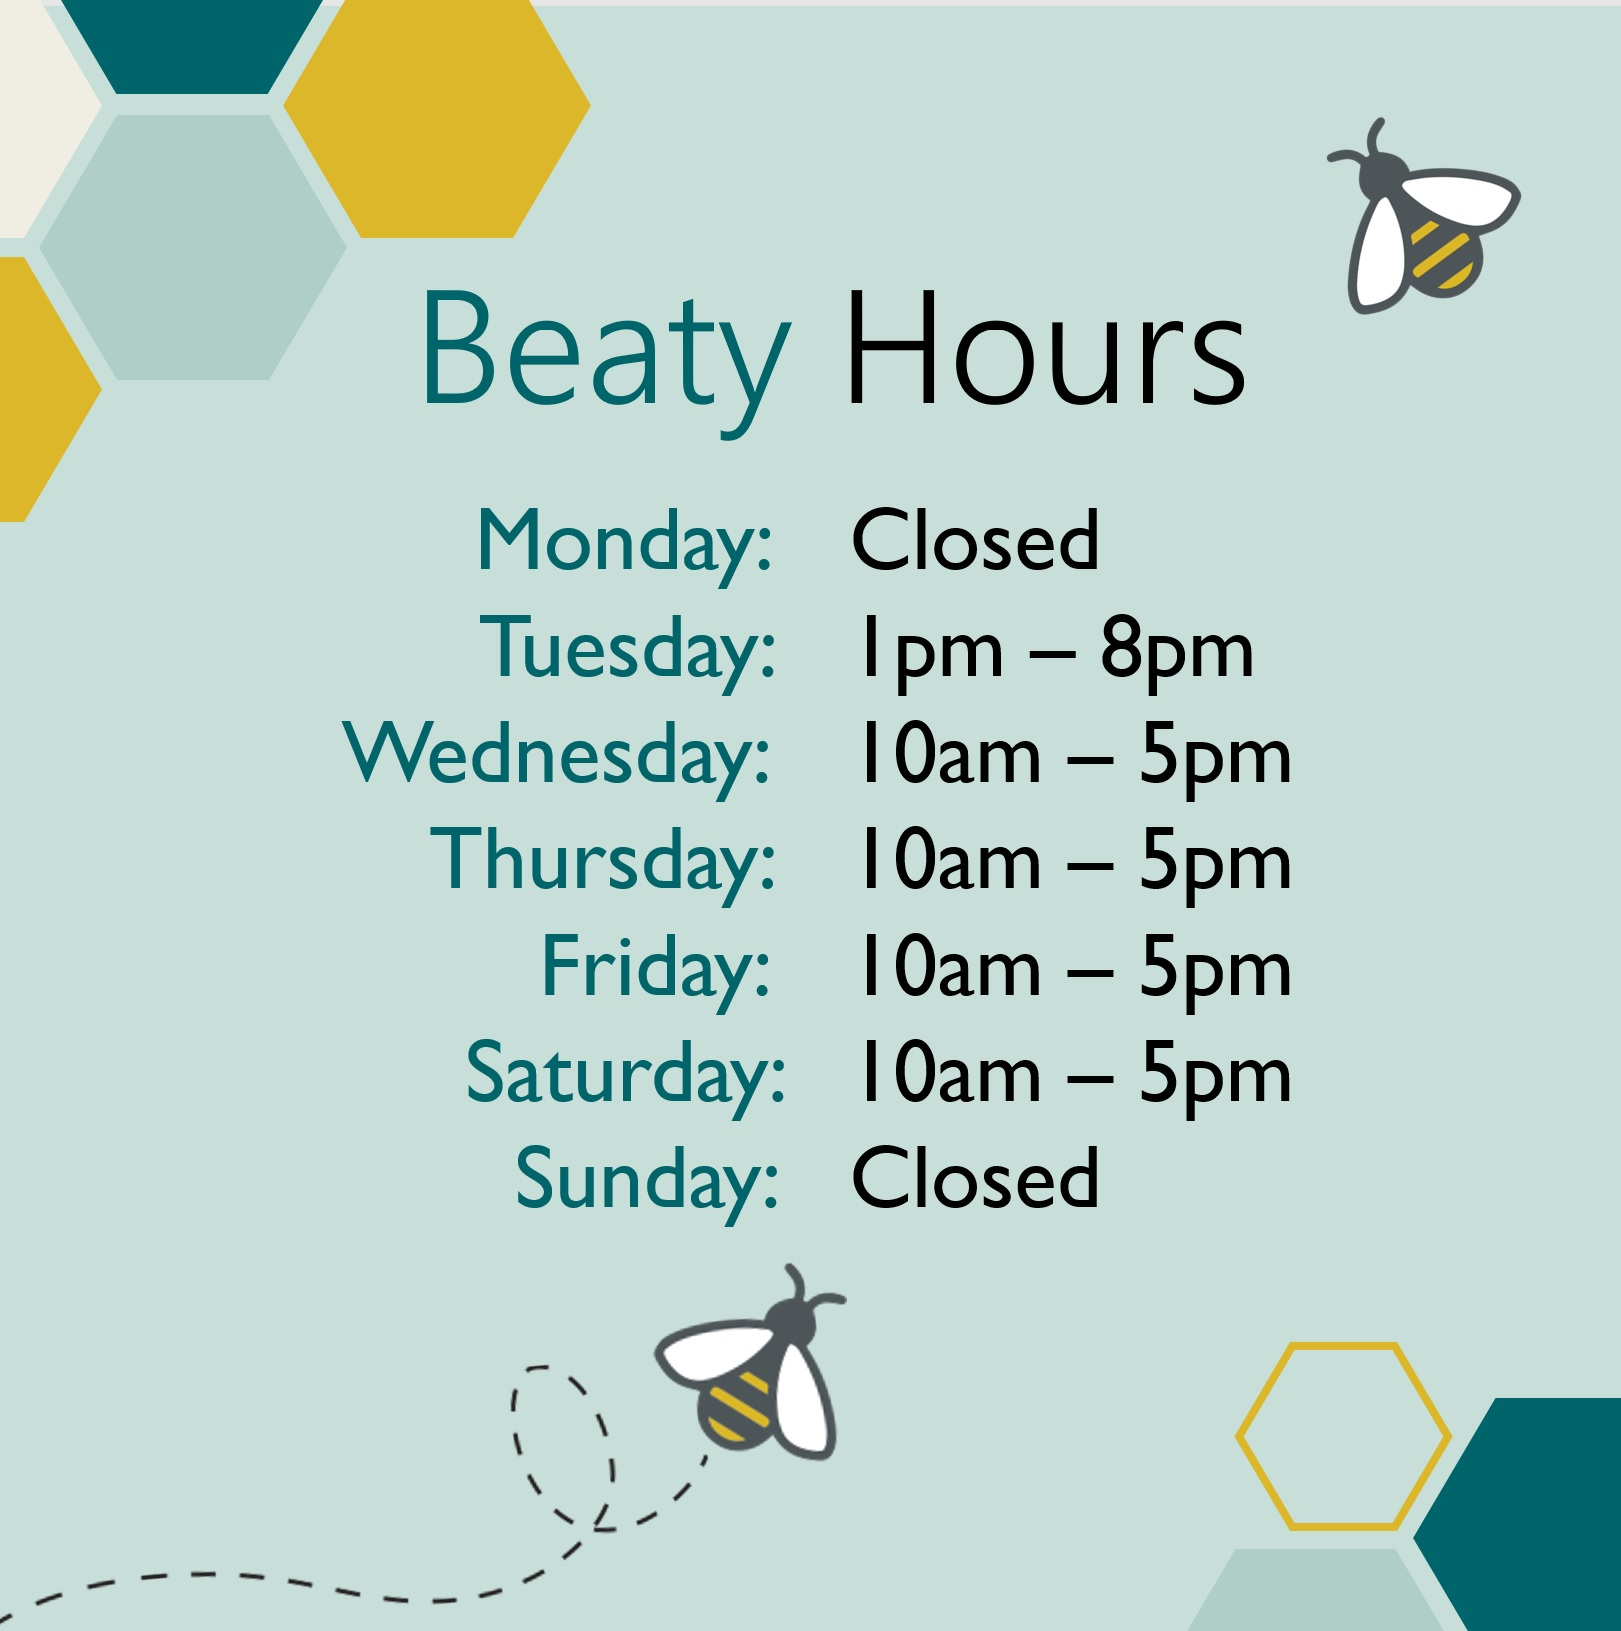 Beaty Hours, Monday Closed, Tuesday 10 am to 5pm, Wednesday 10am to 5pm, Thursday 10am to 5pm, Friday 10 am to 5 pm, Saturday 10 am to 5 pm, Sunday Closed